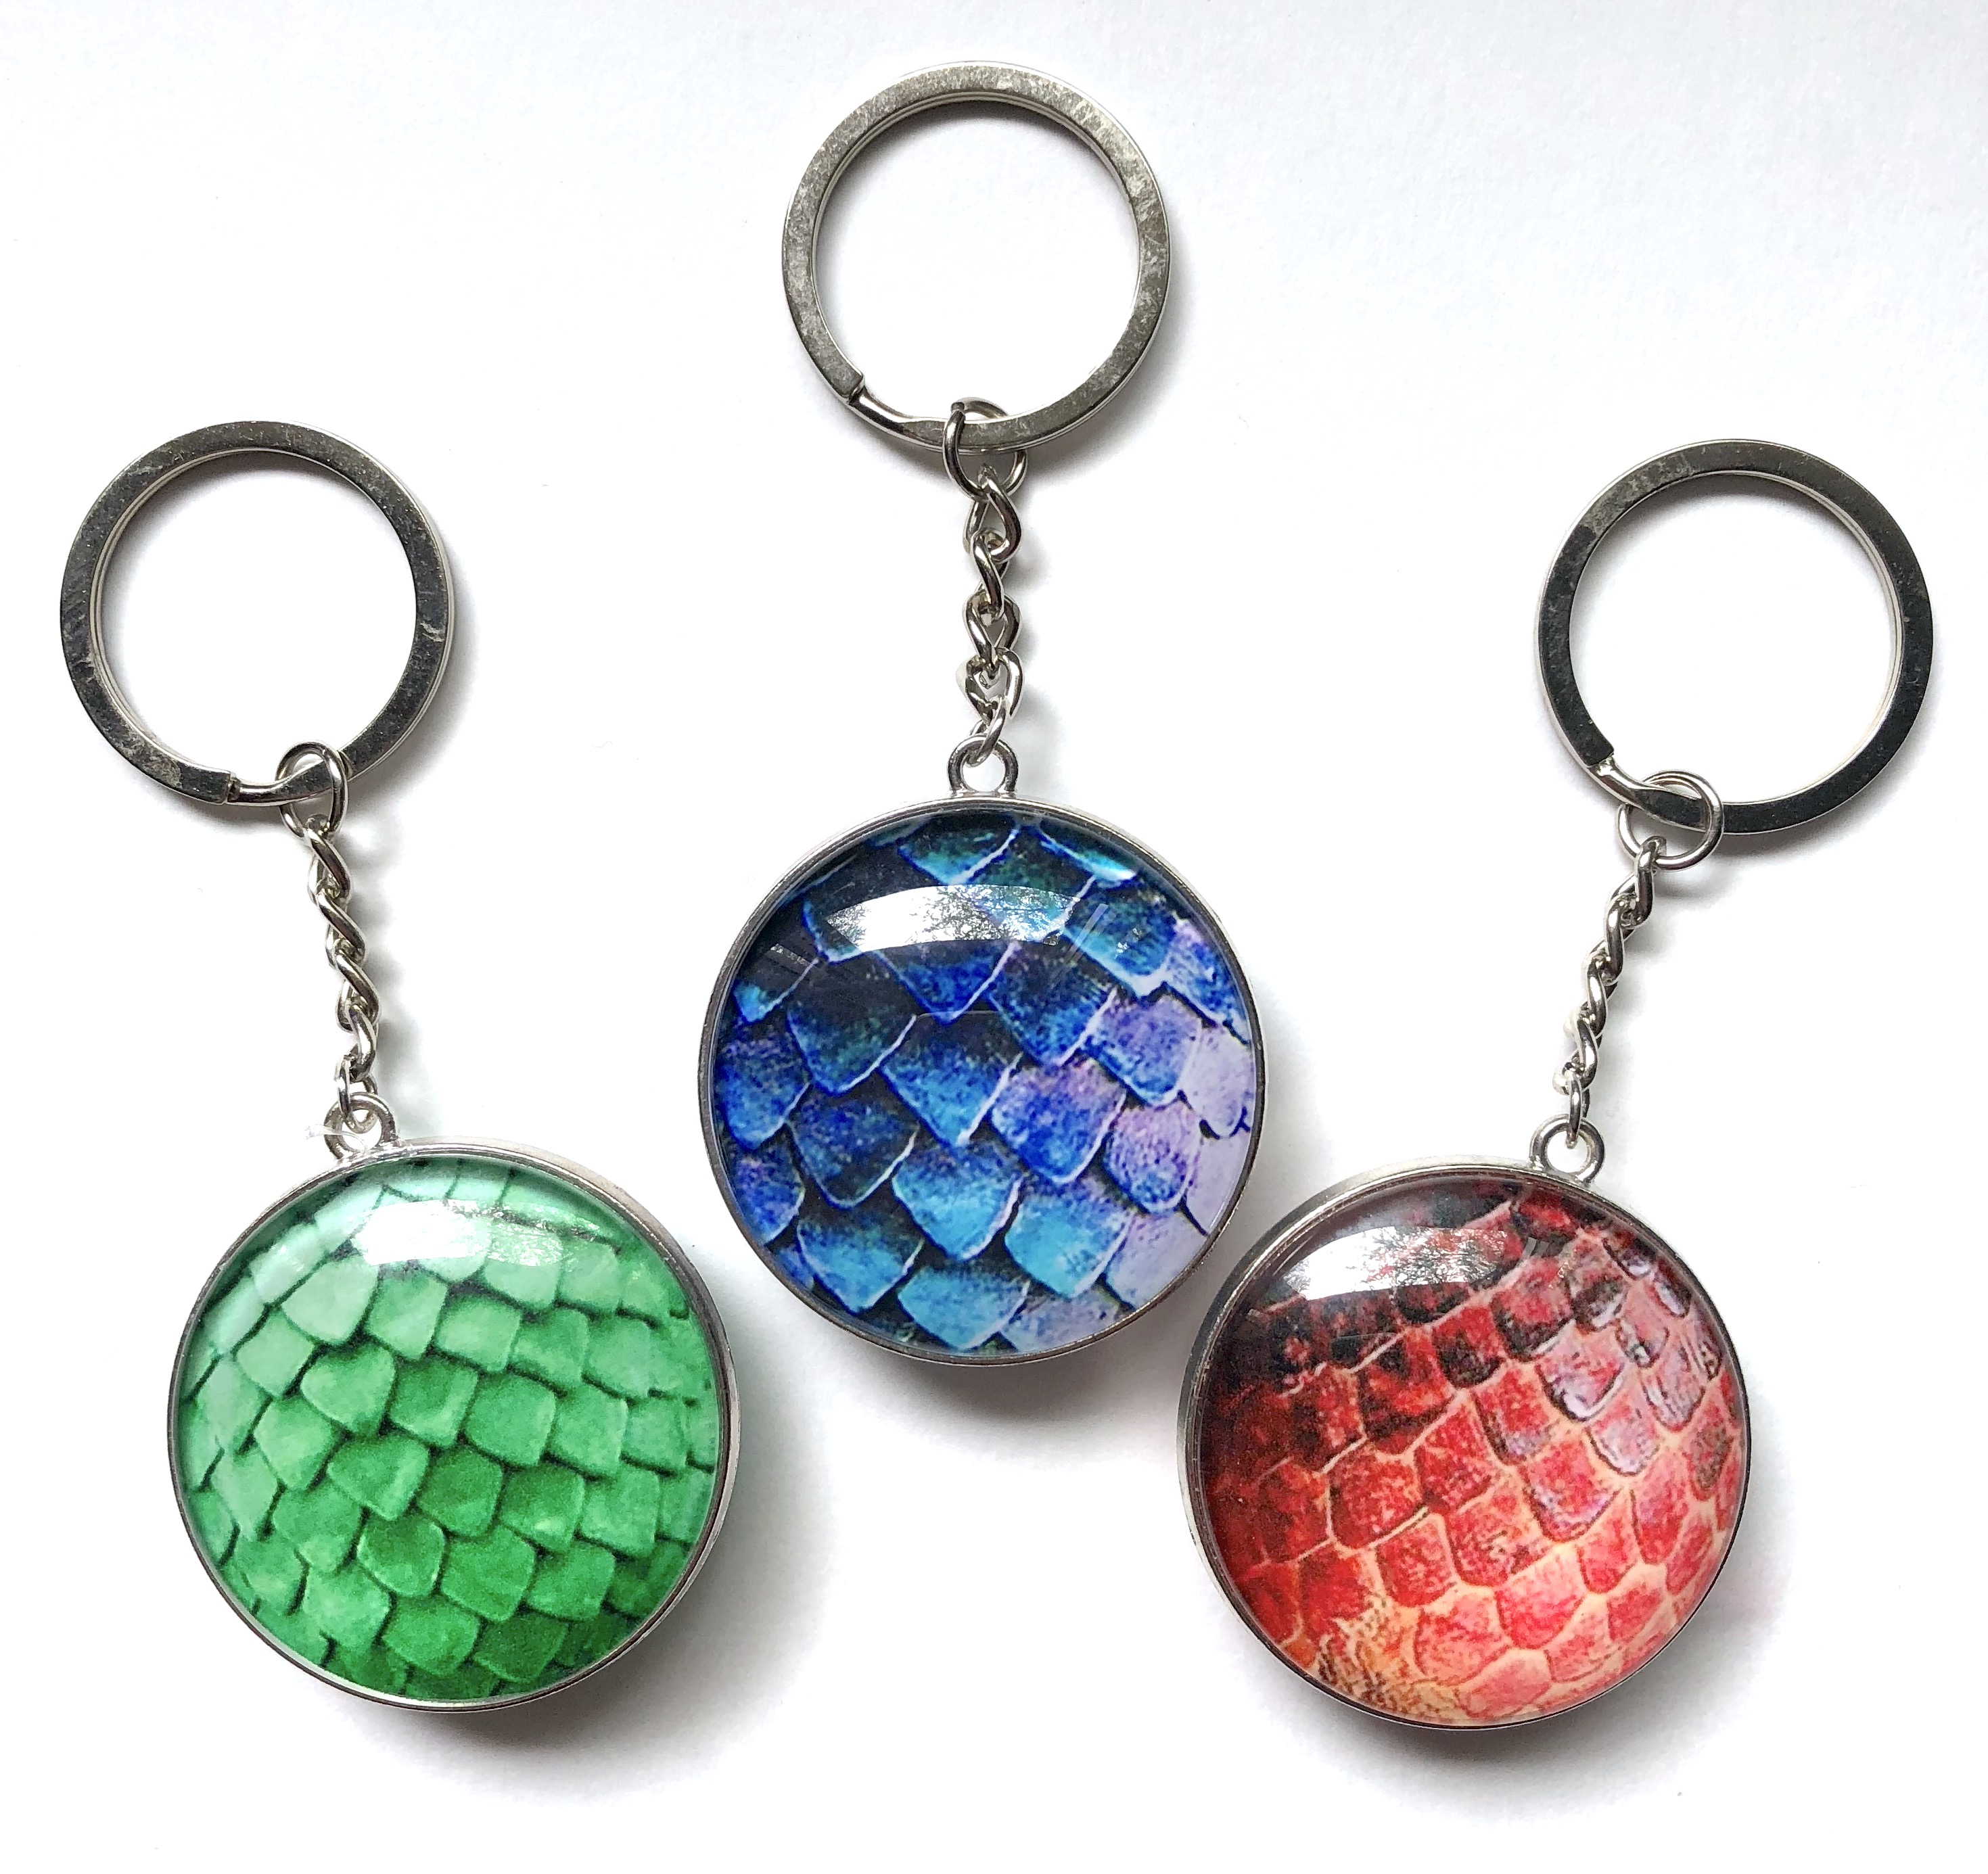 Domed Keychains